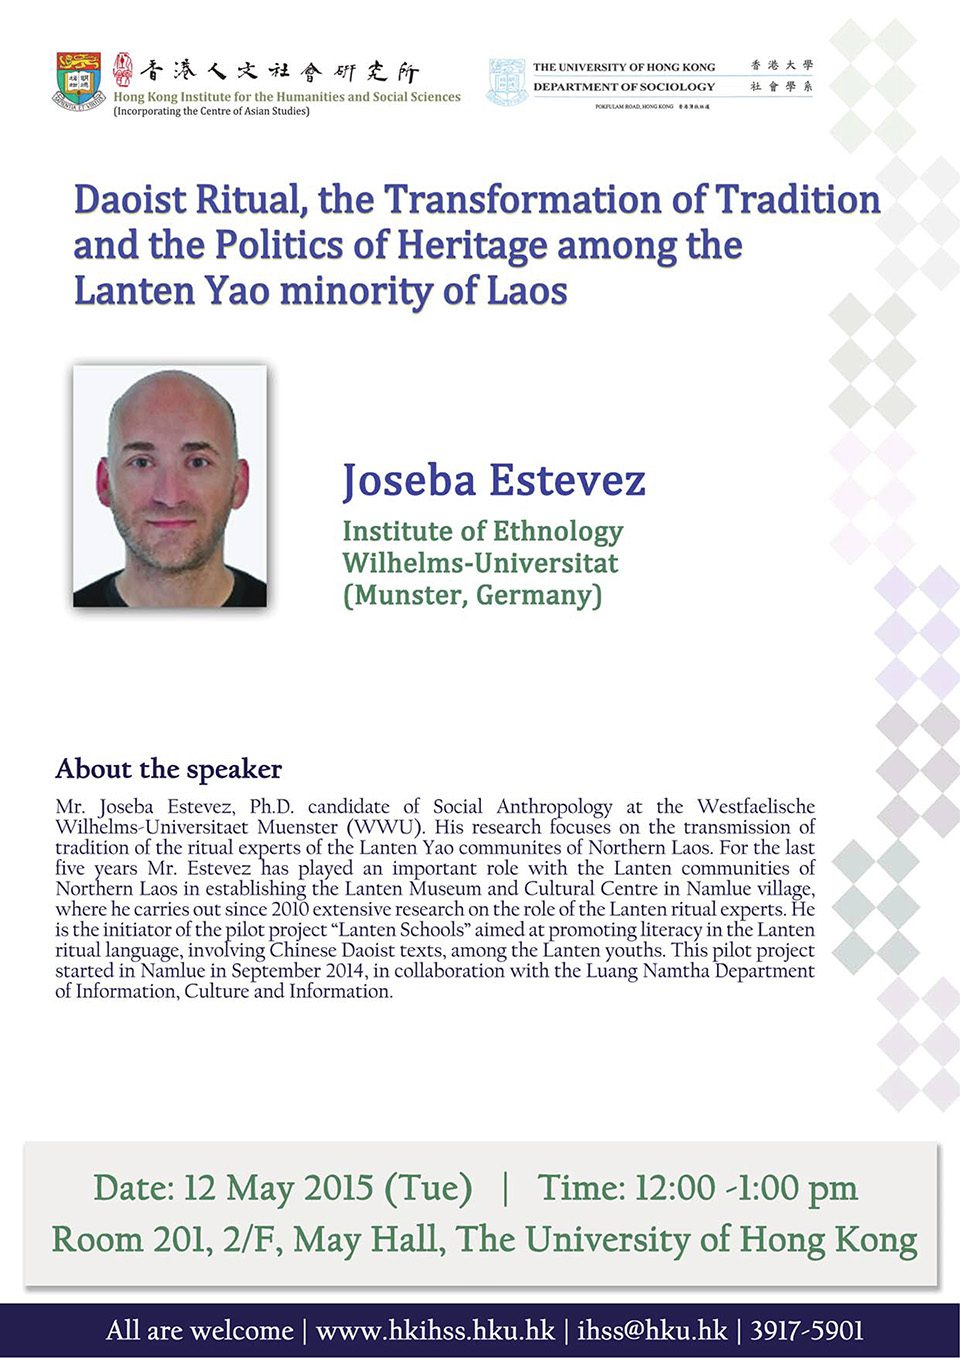 "Seminar on ""Daoist Ritual, the Transformation of Tradition and the Politics of Heritage among the Lanten Yao minority of Laos"" by Mr. Joseba Estevez (May 12, 2015)"